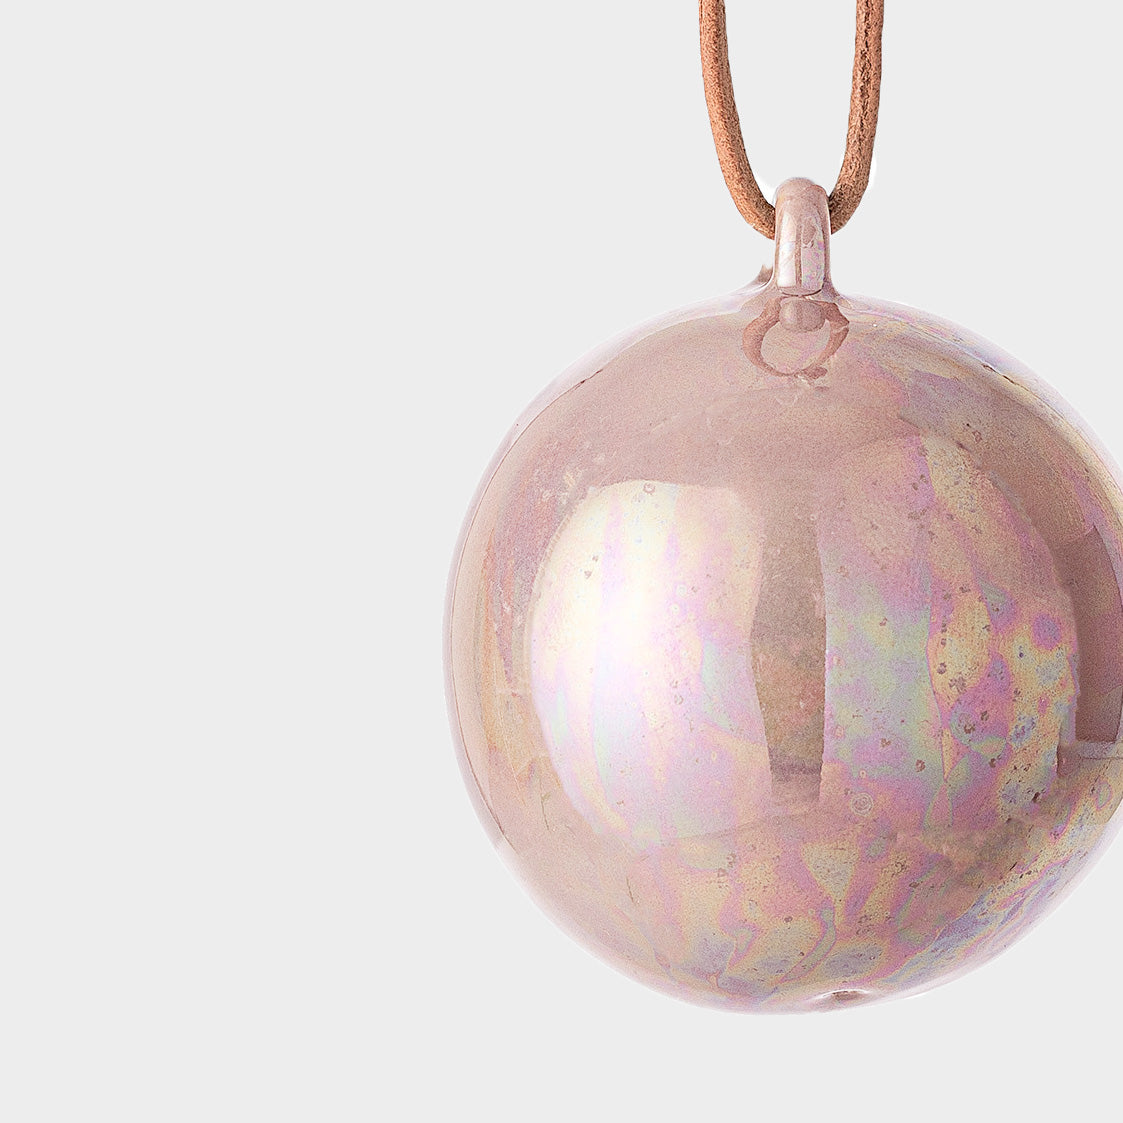 pink glazed ceramic decorative bauble